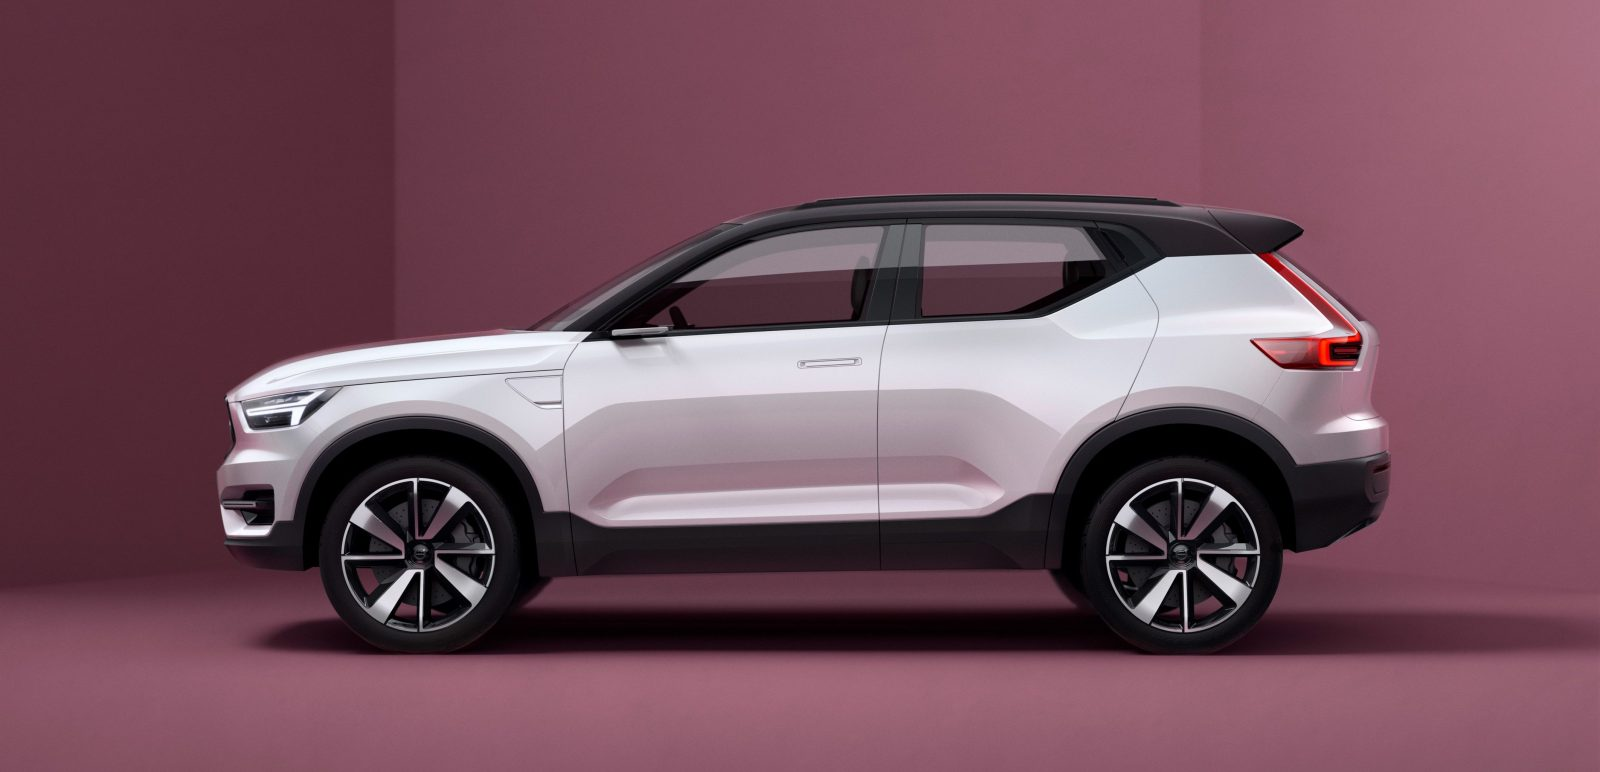 Volvo credits Tesla for creating EV demand, says they will stop developing diesel engines to focus on EVs